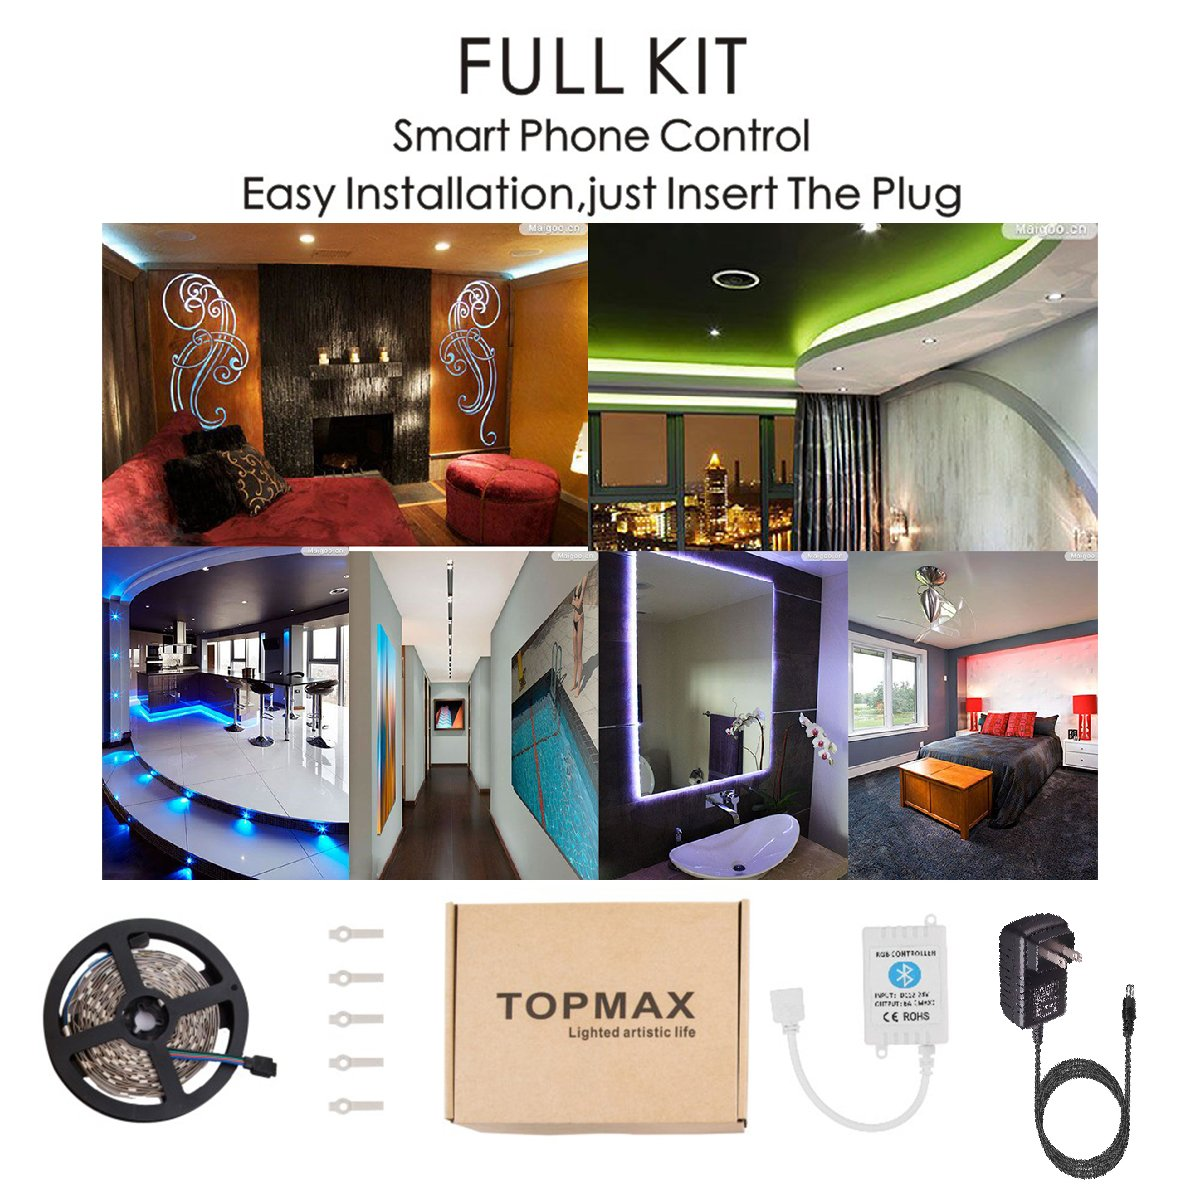 Led Strip Lights Topmax Bluetooth Smartphone Controlled Rgb Fashion Lighting Controller Circuit Schematic Circuits Light Kit 164ft 5m 150leds 5050 Non Waterproof With 12v 3a Power